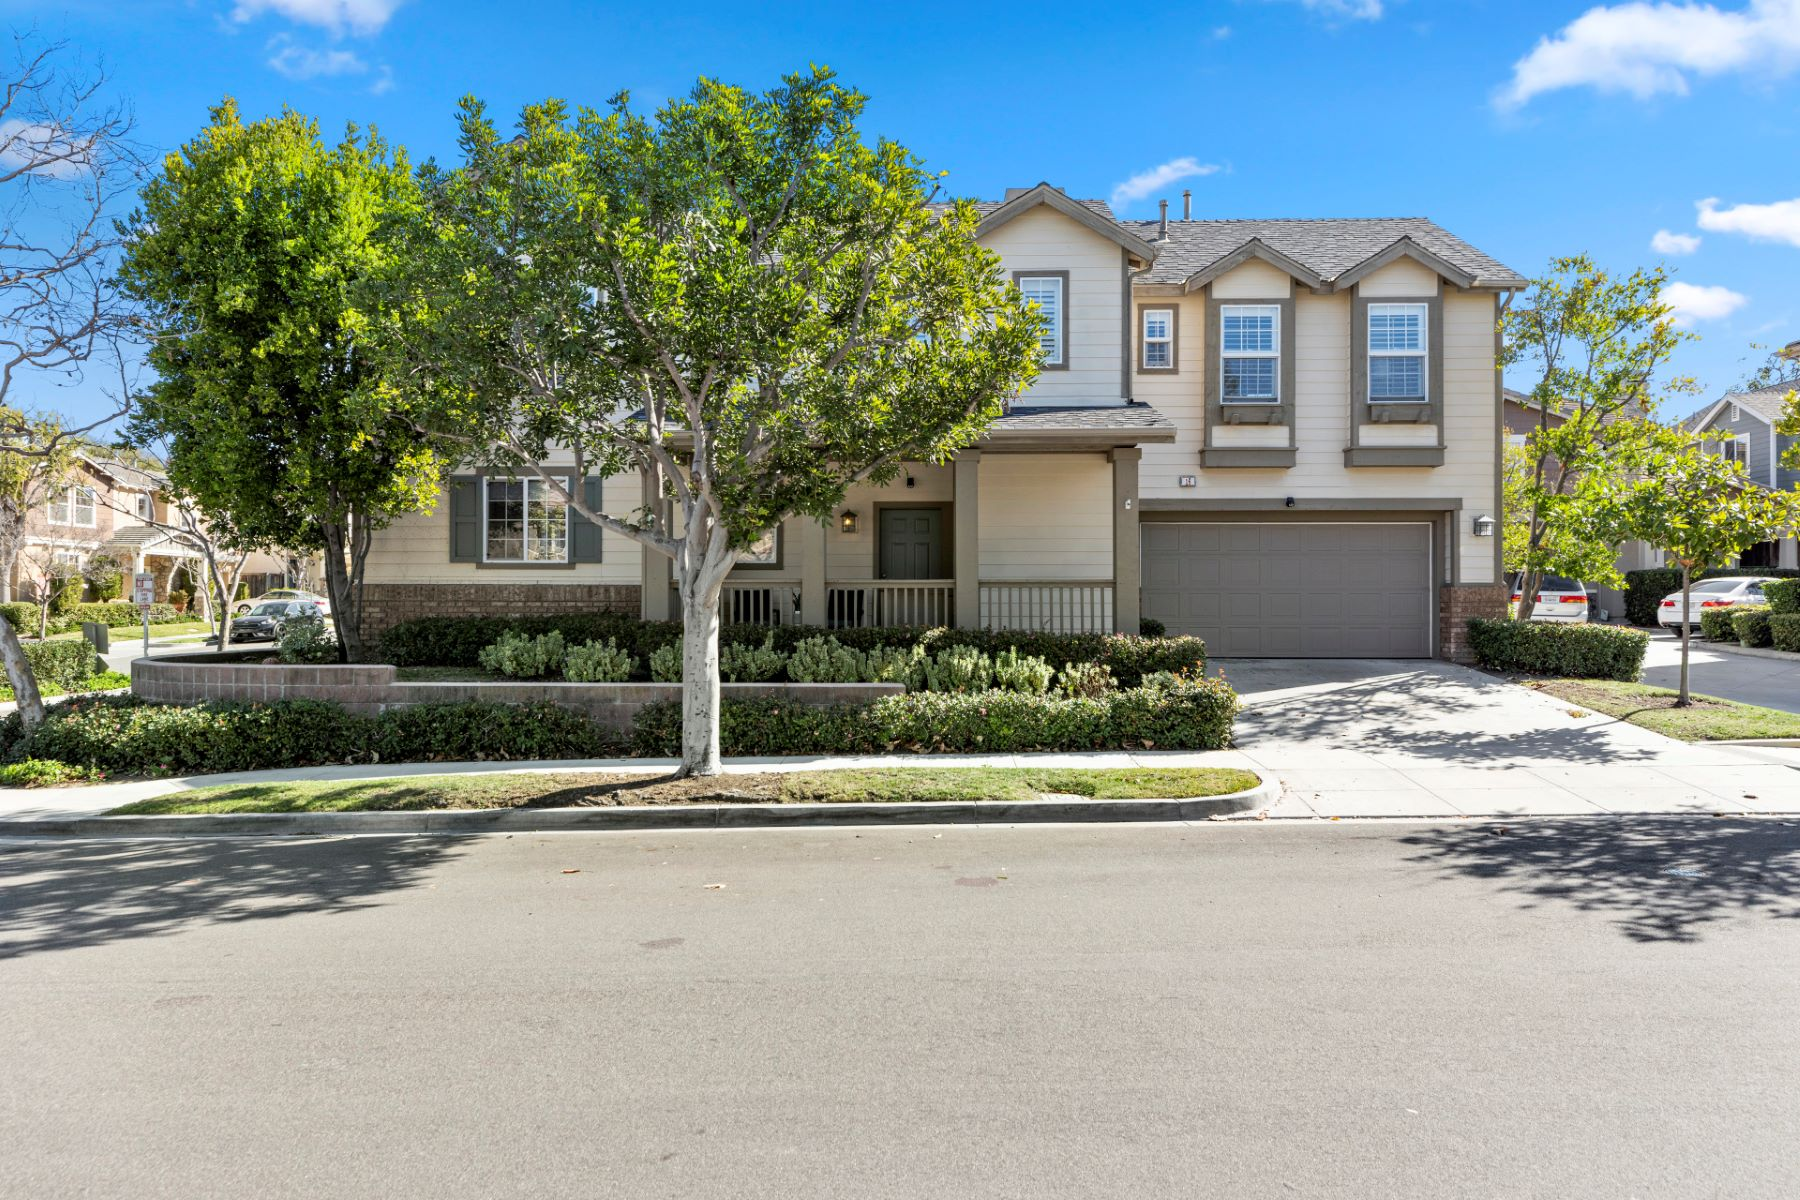 Single Family Homes for Active at 16 Iron Horse Ladera Ranch, California 92694 United States